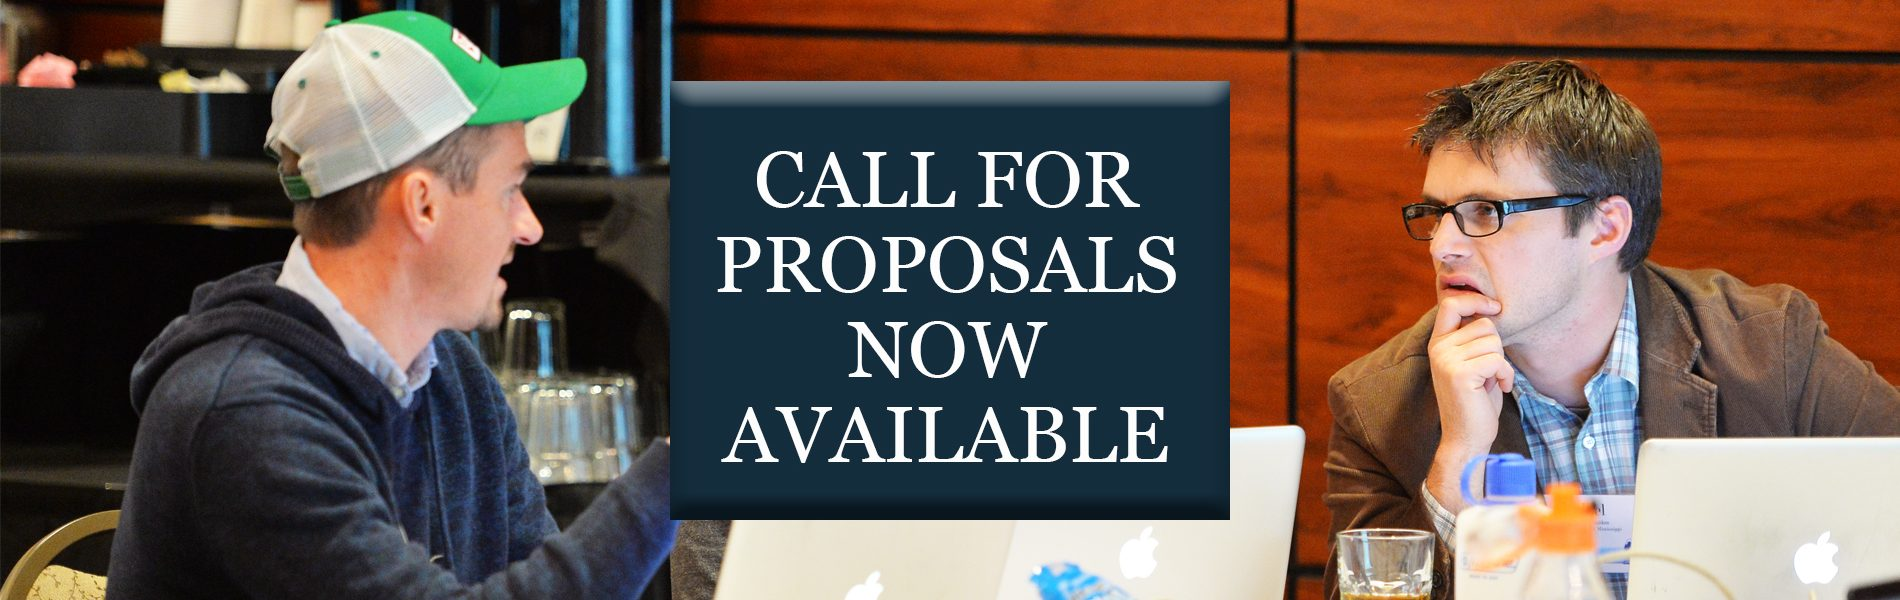 Call for Proposals Now Available